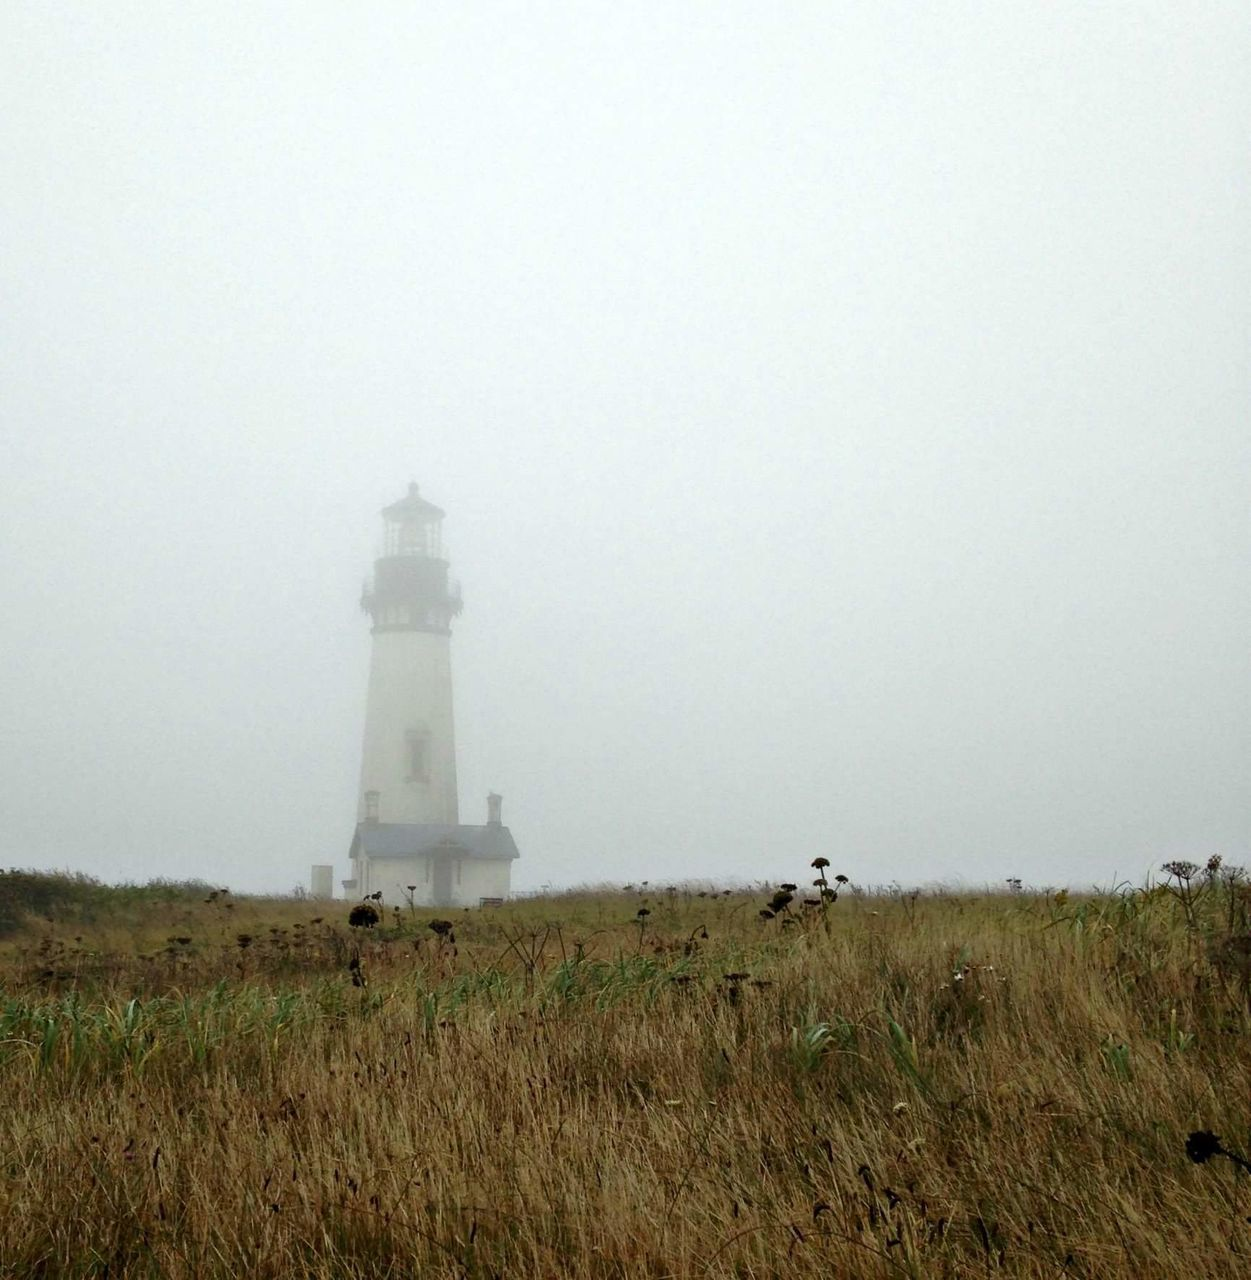 lighthouse, landscape, grass, direction, field, nature, architecture, guidance, outdoors, day, fog, tranquility, no people, beauty in nature, sky